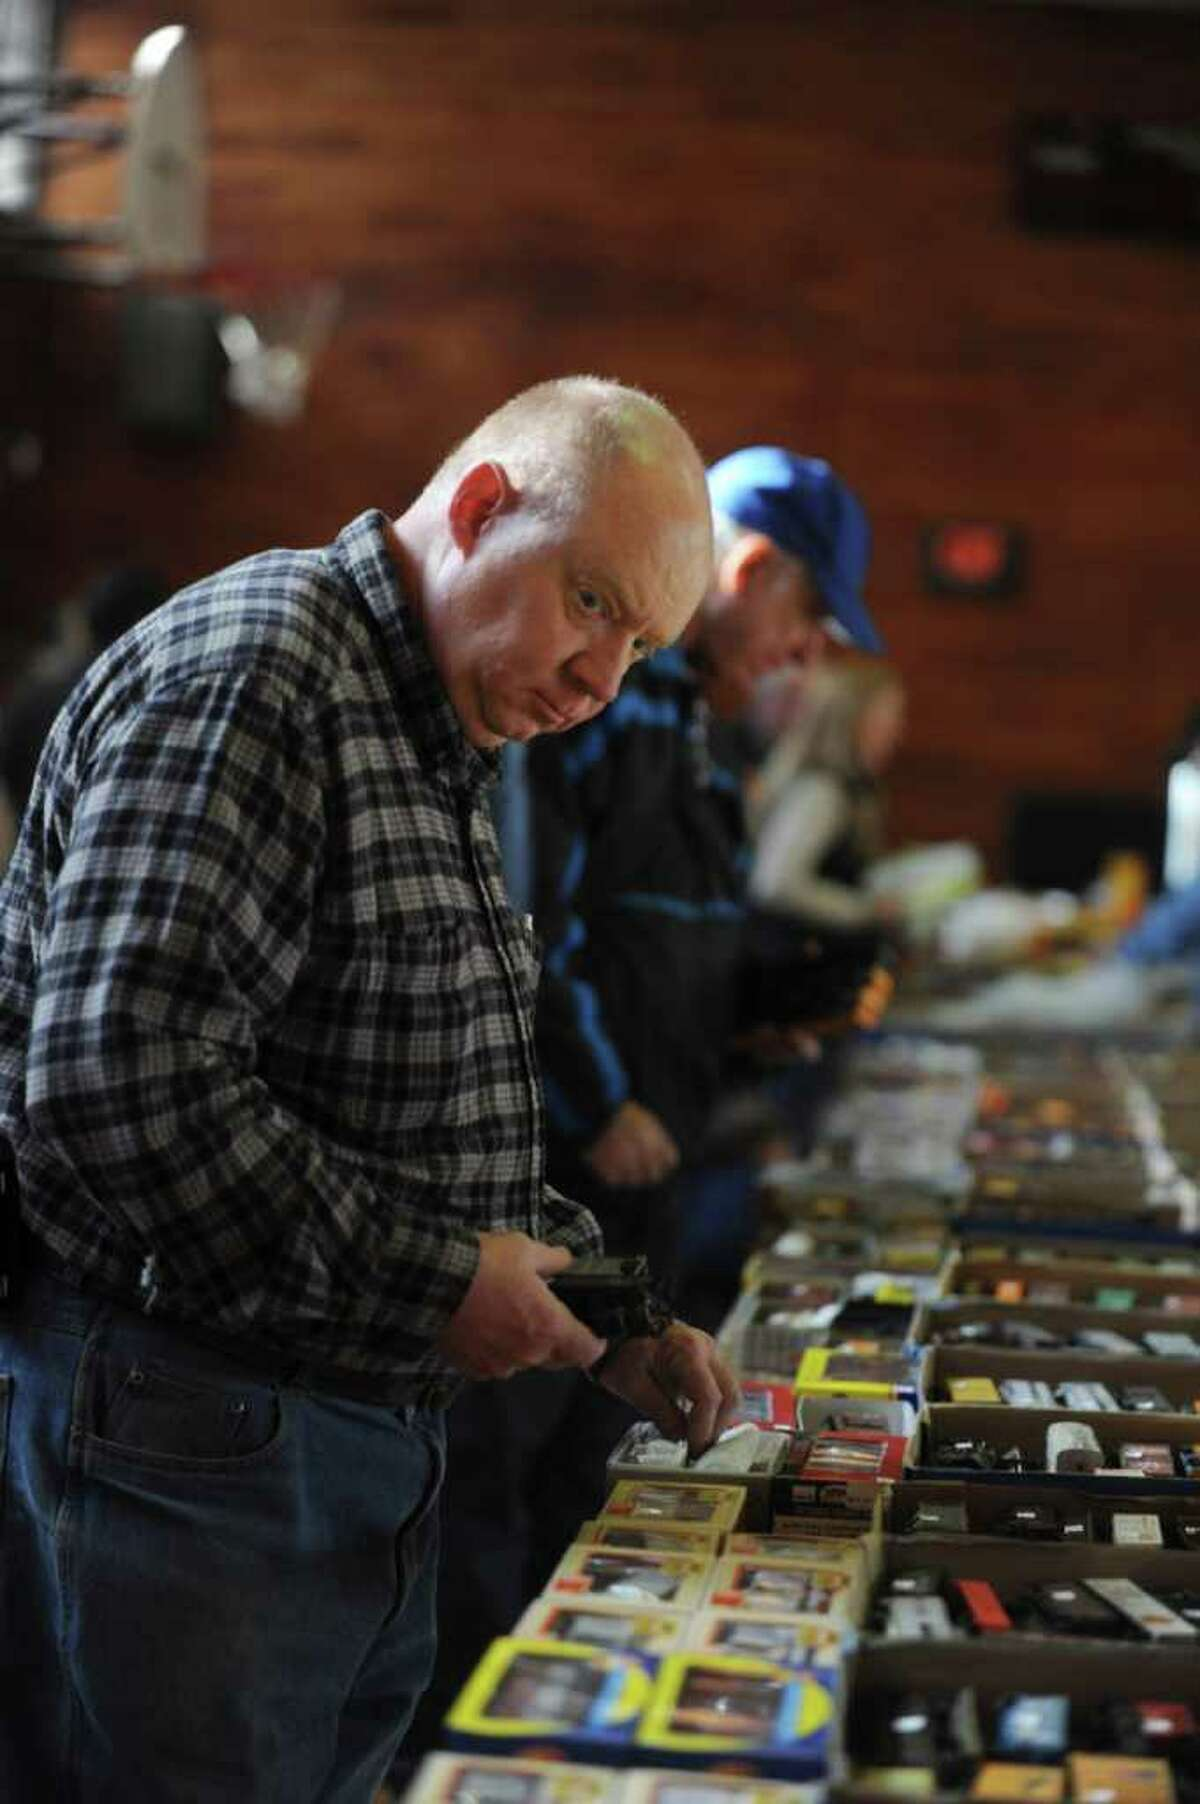 Ken Grogan, of Hartsdale, N.Y., looks at model trains at the Westchester Model Railroad Club's Fall Train Meet at Eastern Greenwich Civic Center Sunday, Nov. 27, 2011.